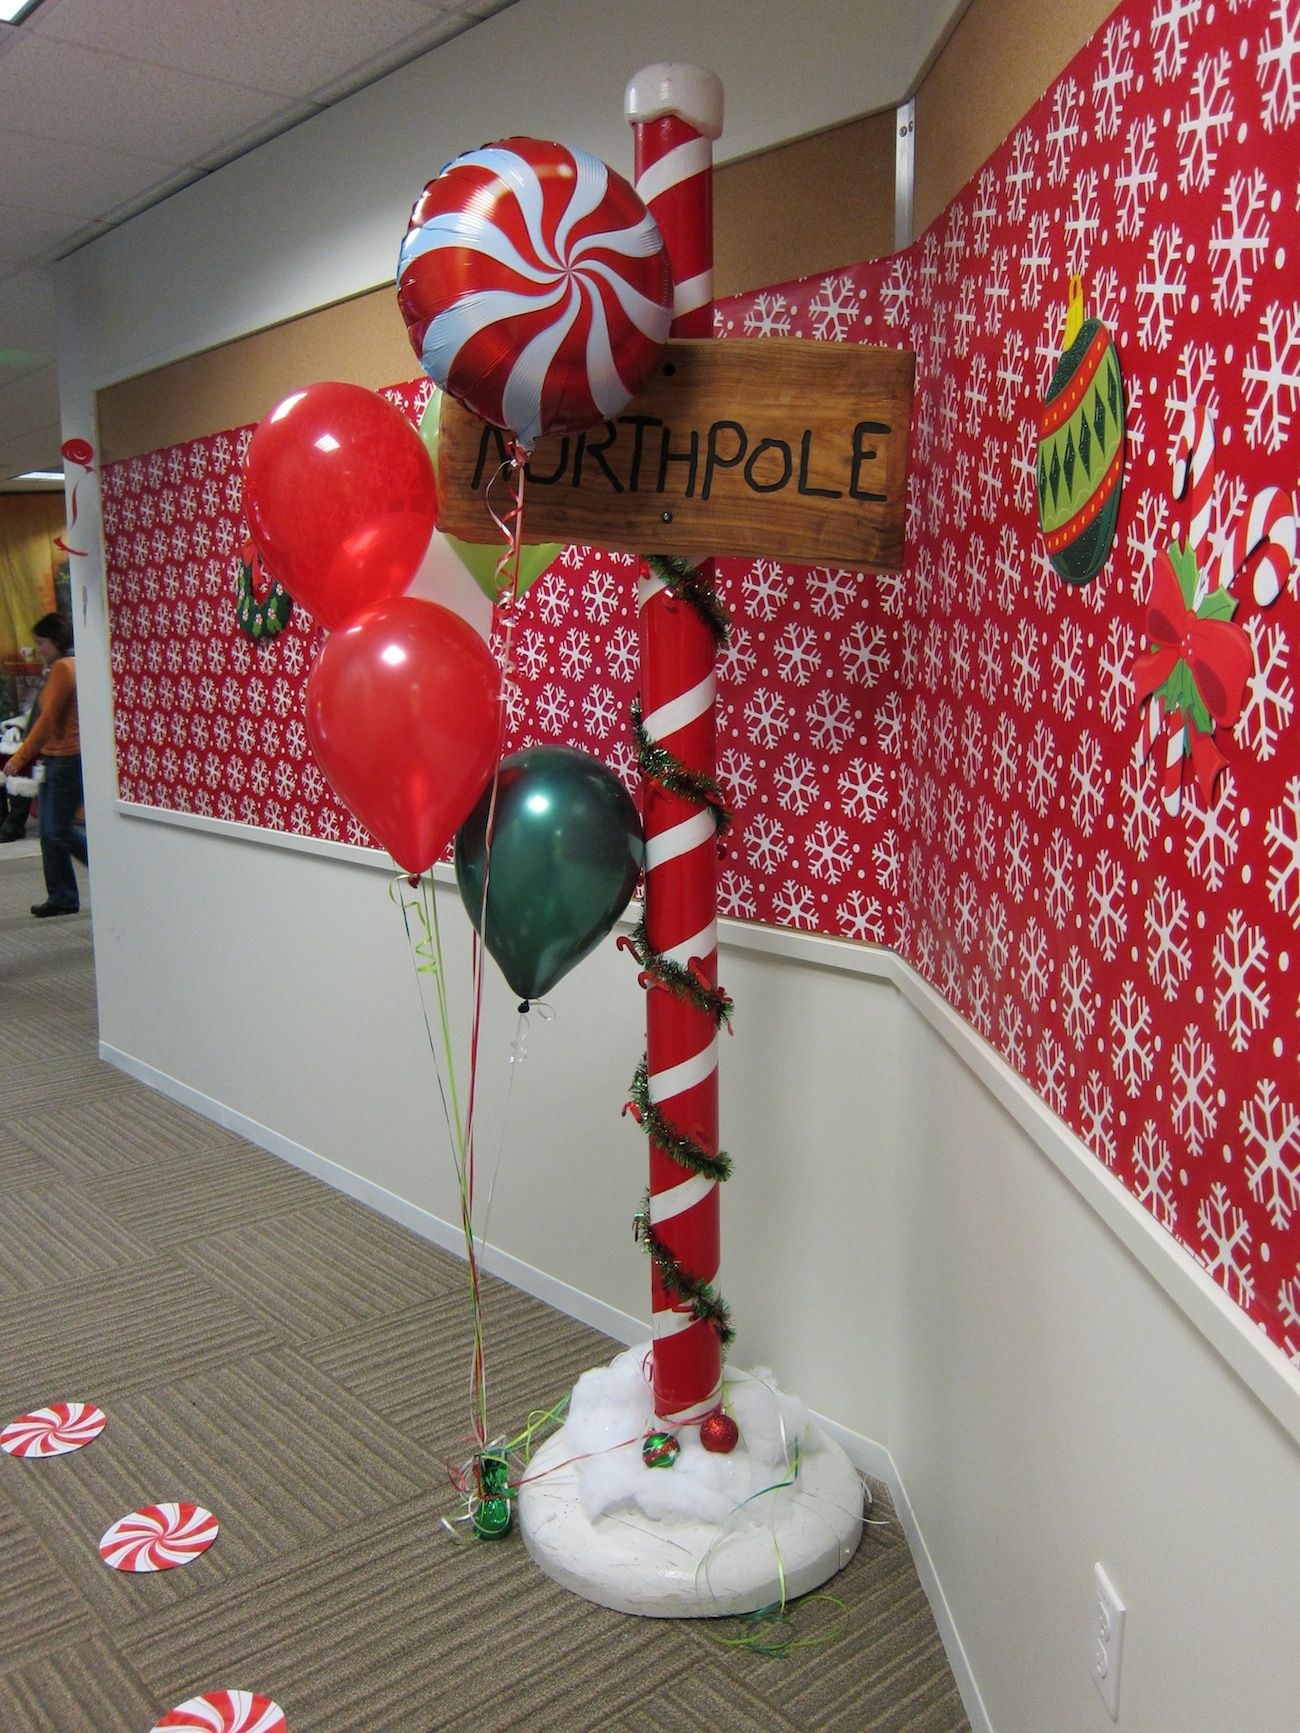 north pole decor - North Pole Christmas Decorations